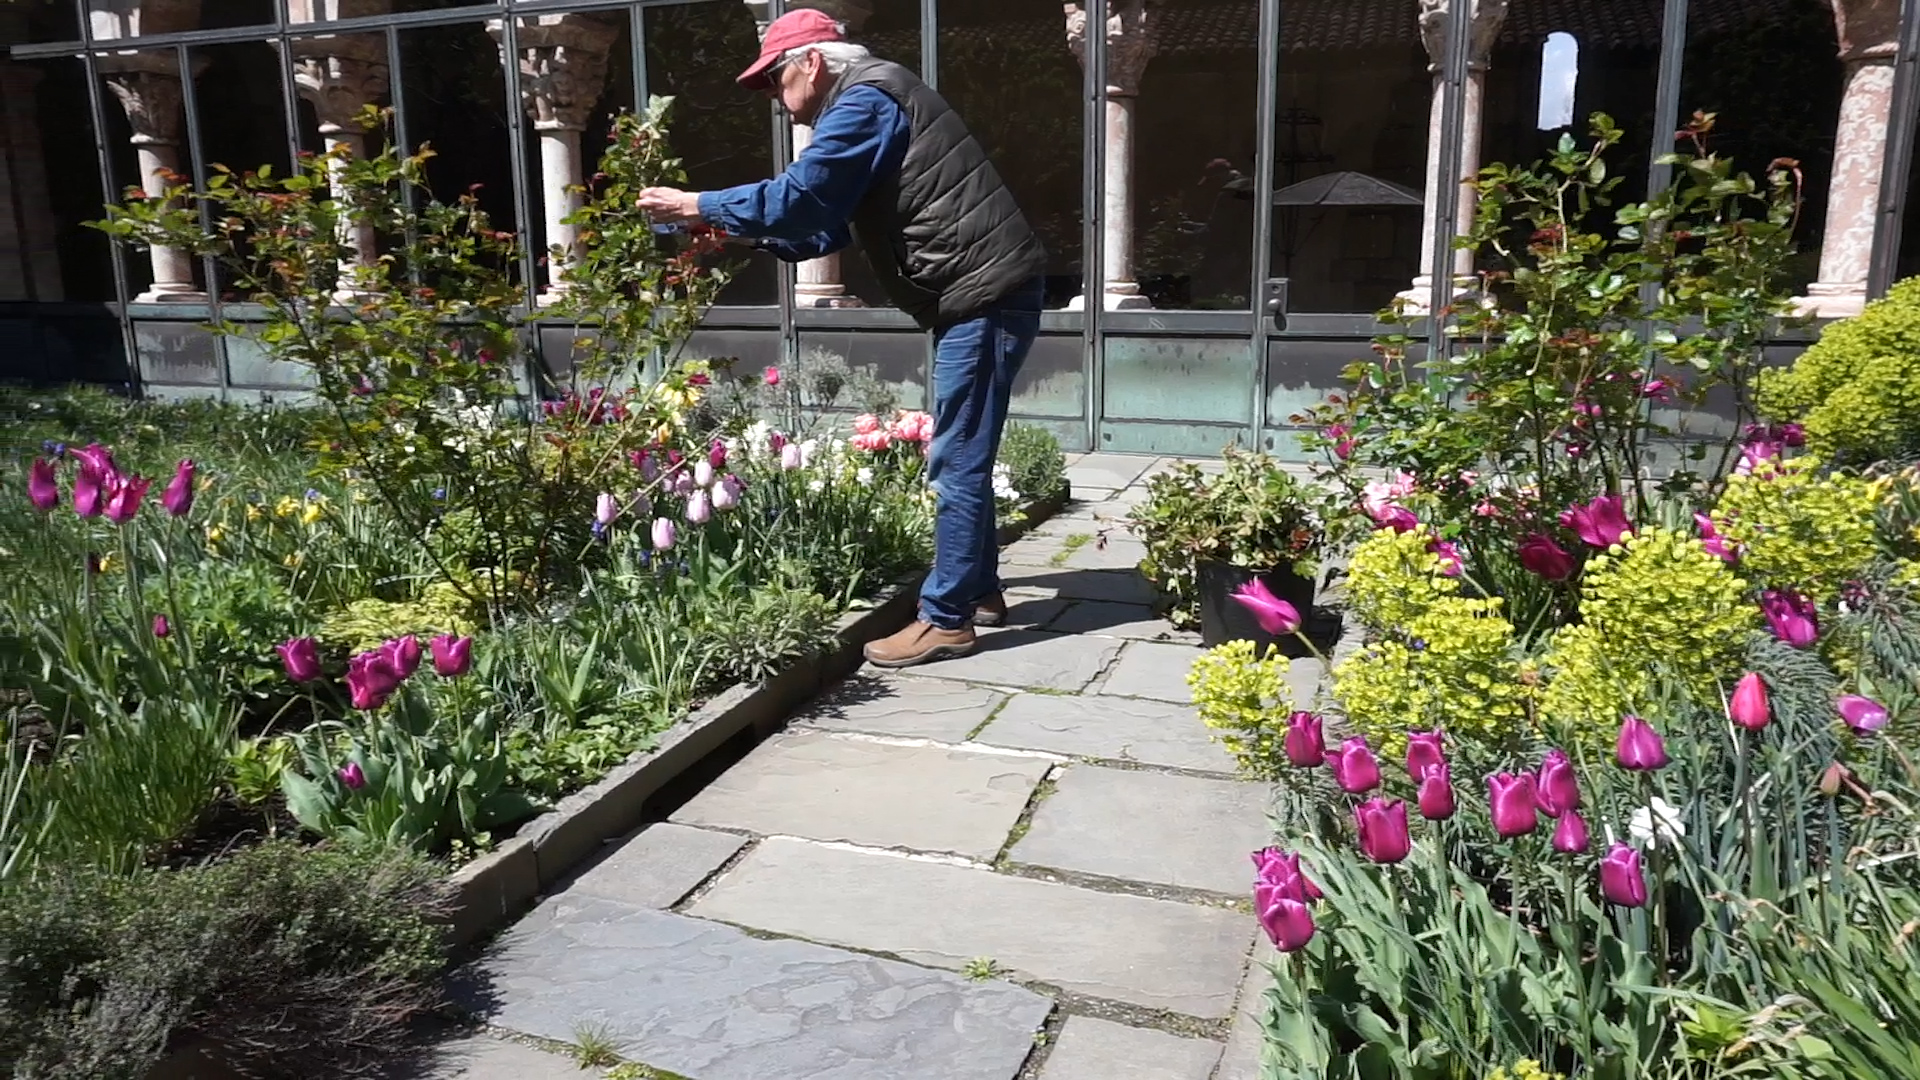 A man stands on a stone laid path touch plants as he checks them on his walk through.